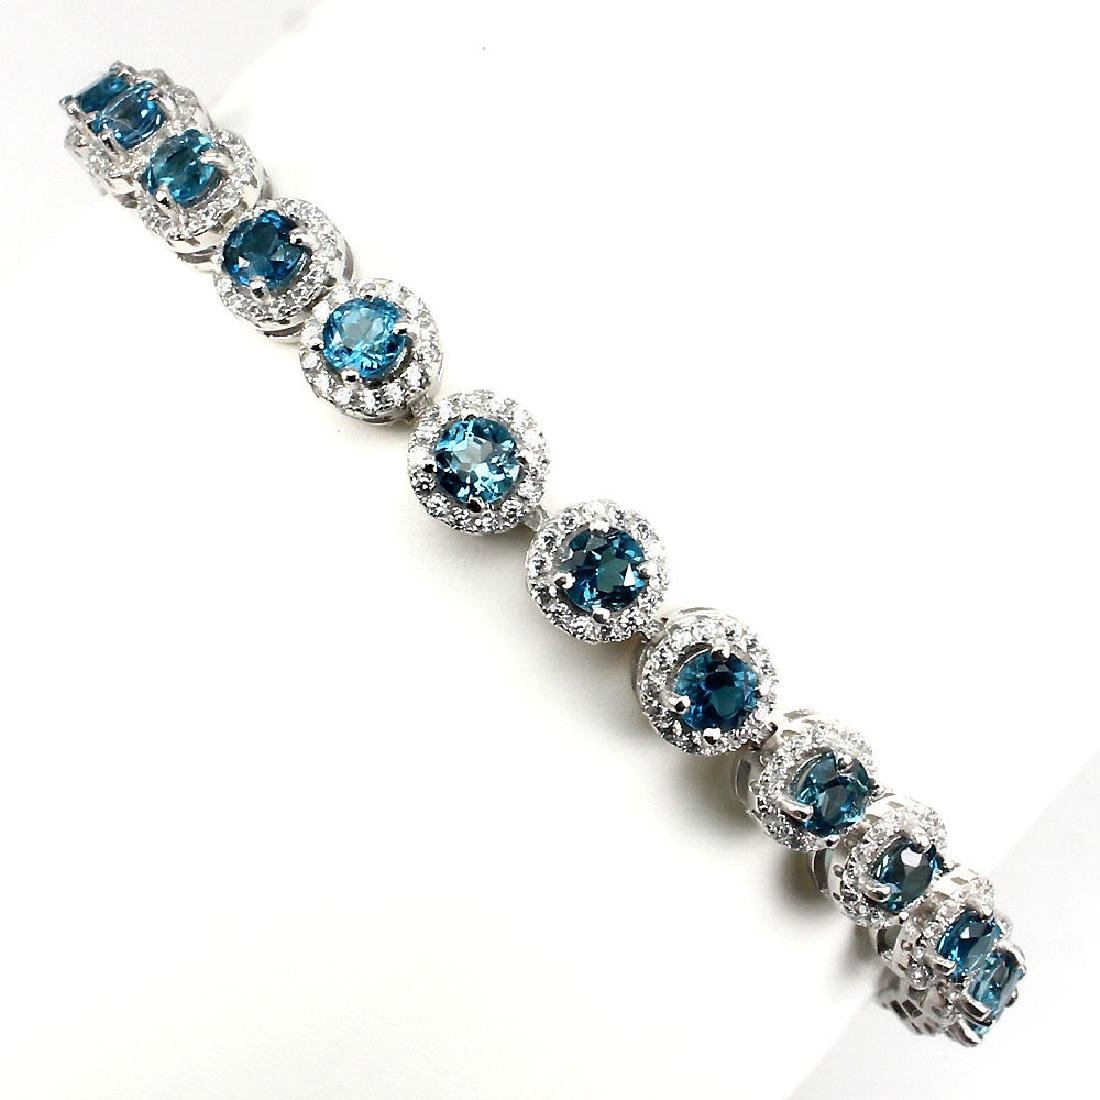 Natural London Blue Topaz 74 Carats Bracelet